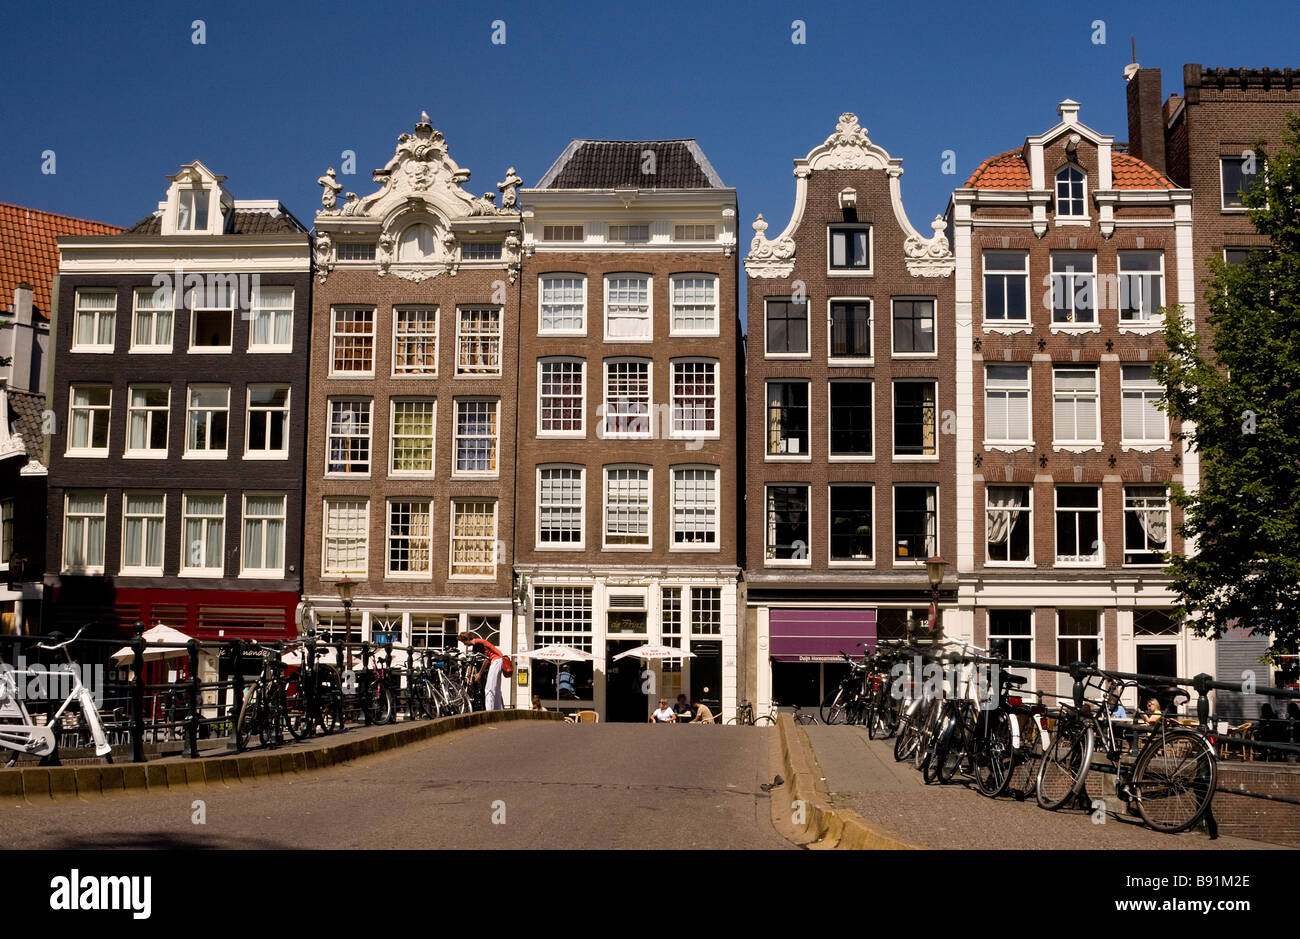 typical houses lining the prinsengracht - Stock Image